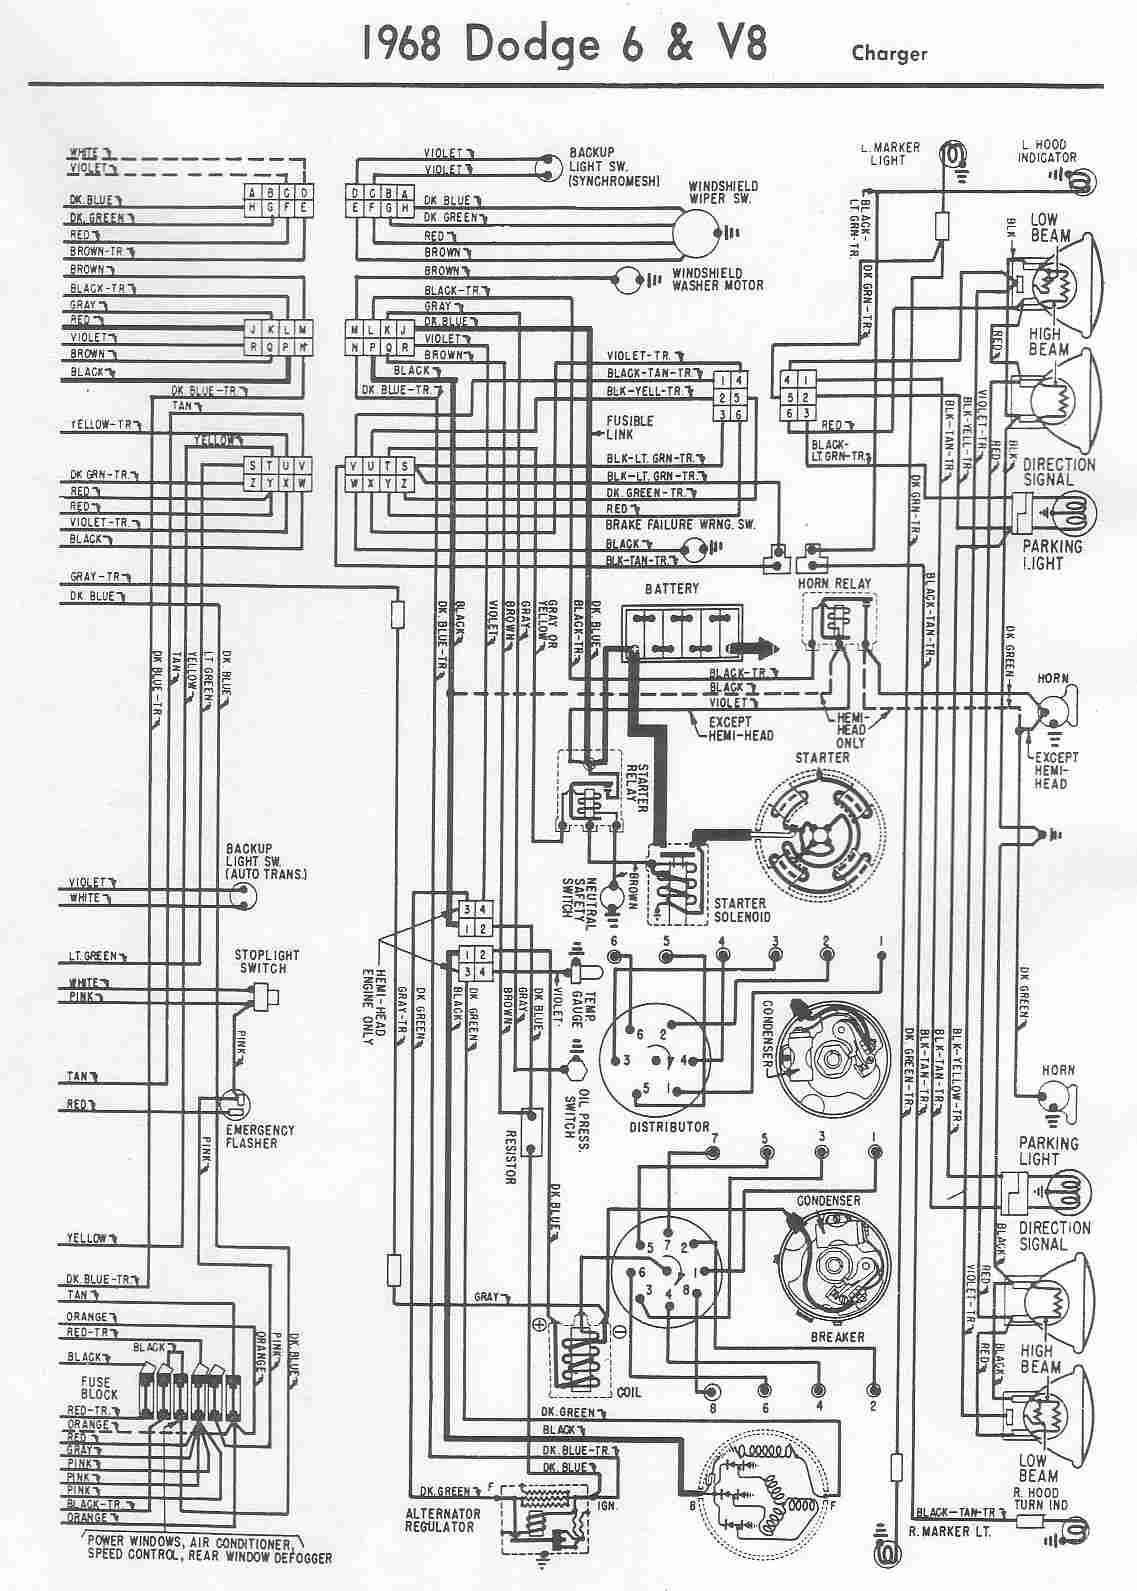 charger electrical wiring diagram of 1968 dodge 6 and v8?t=1508404771 dodge car manuals, wiring diagrams pdf & fault codes 1970 dodge coronet wiring diagram at soozxer.org